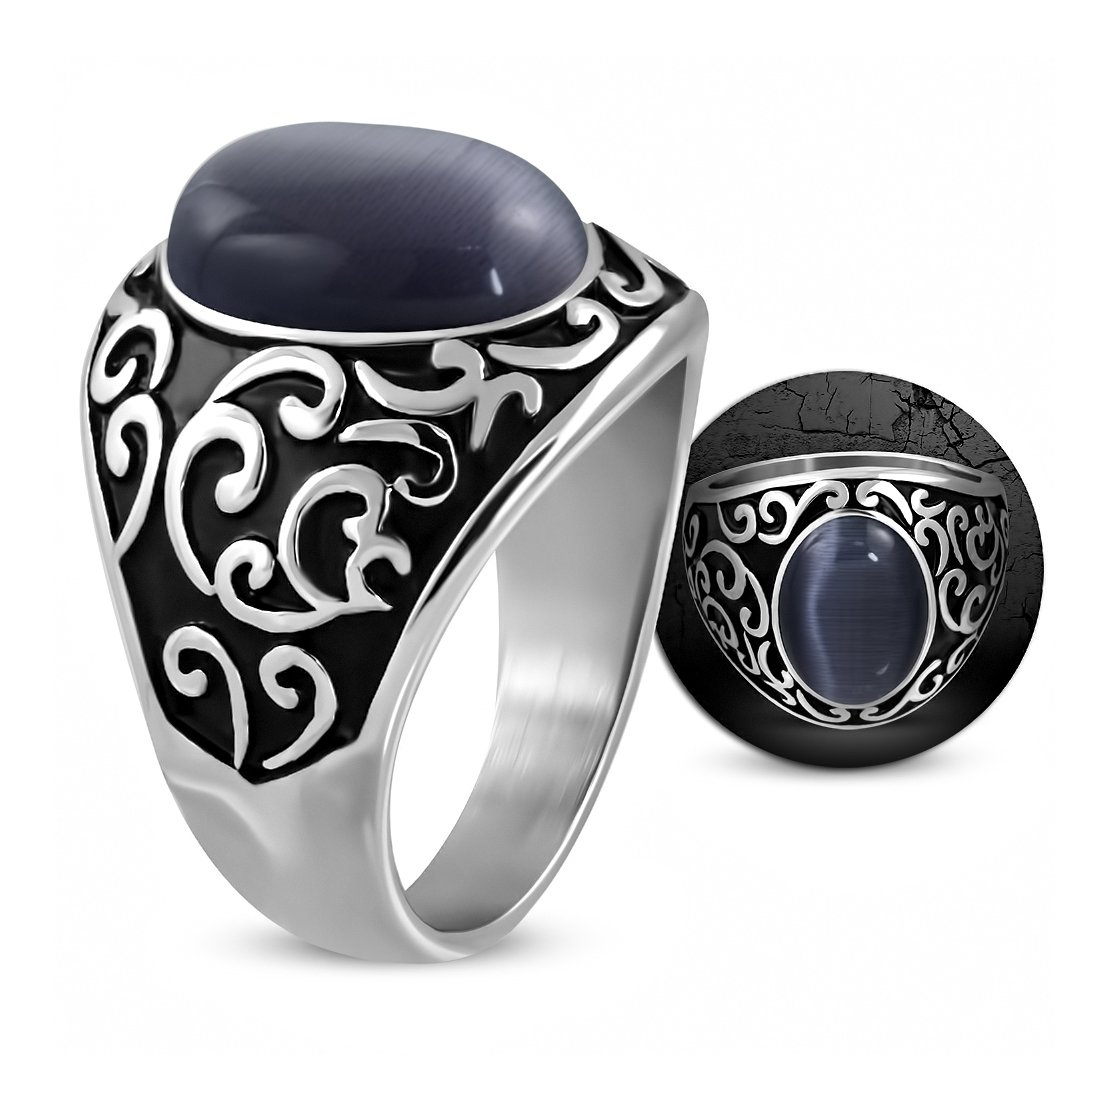 NRG Rings Stainless Steel 2 Color Spiral Vine Shank Oval Dome Biker Ring with Cats Eyes Stone